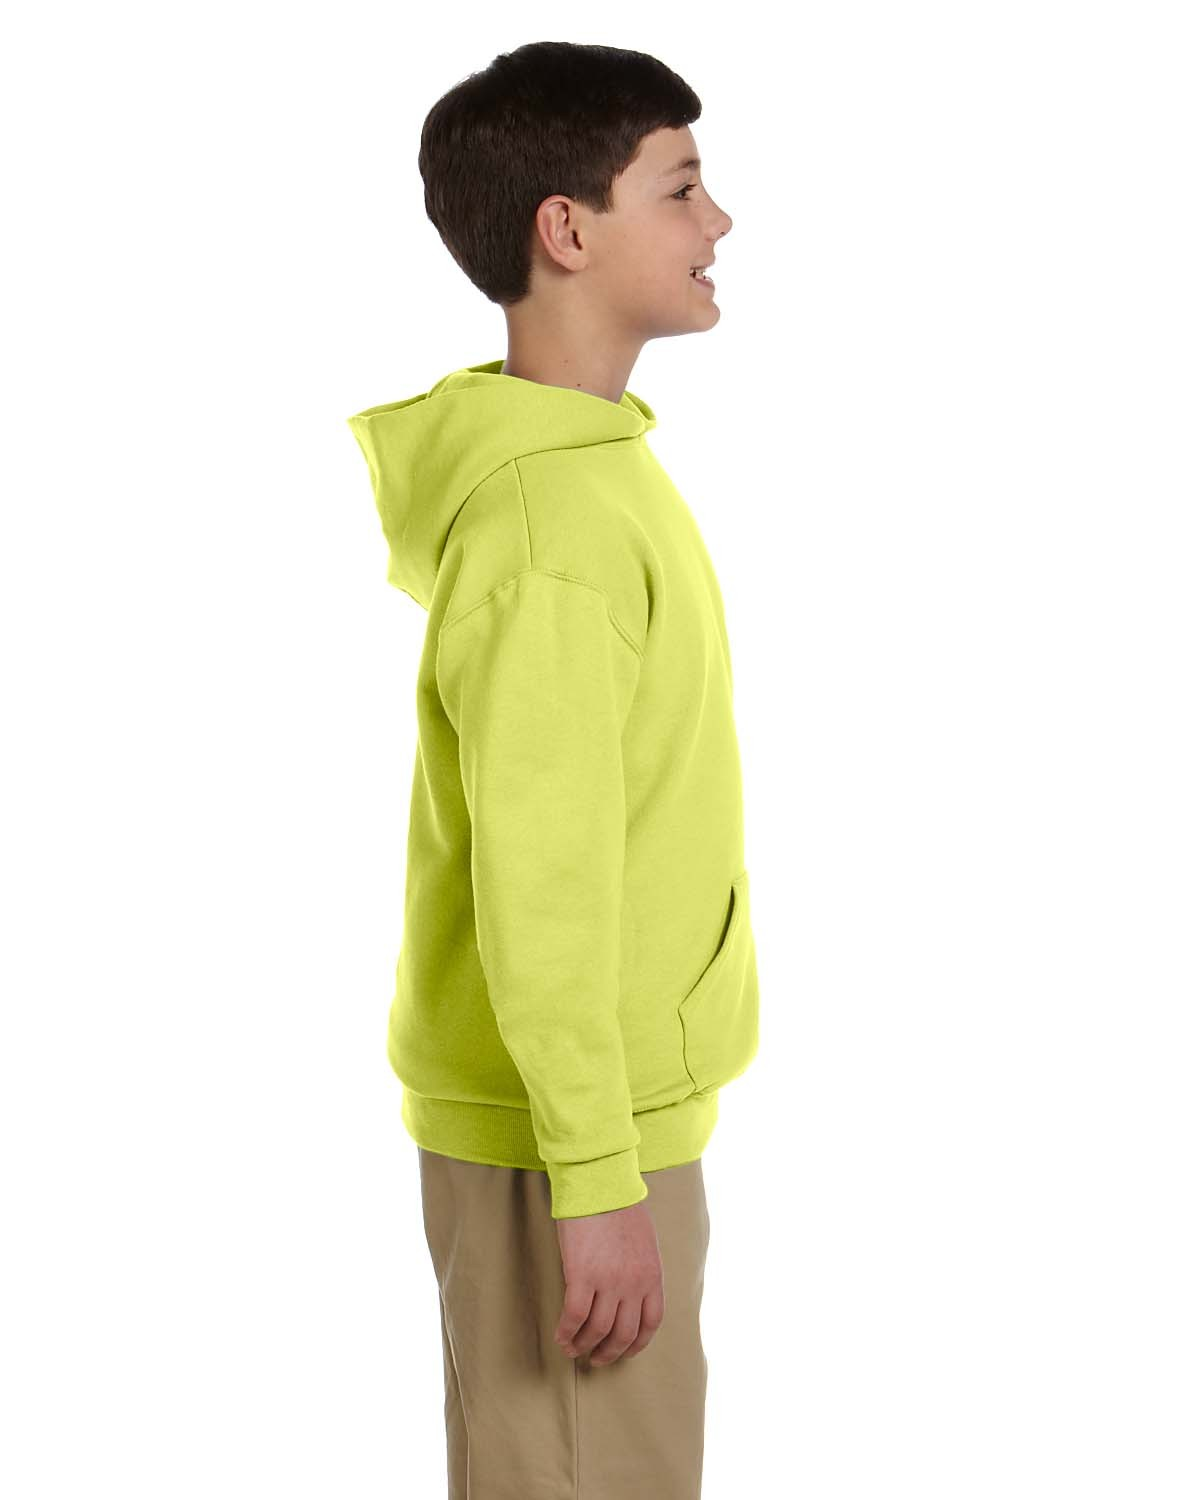 996Y Jerzees SAFETY GREEN